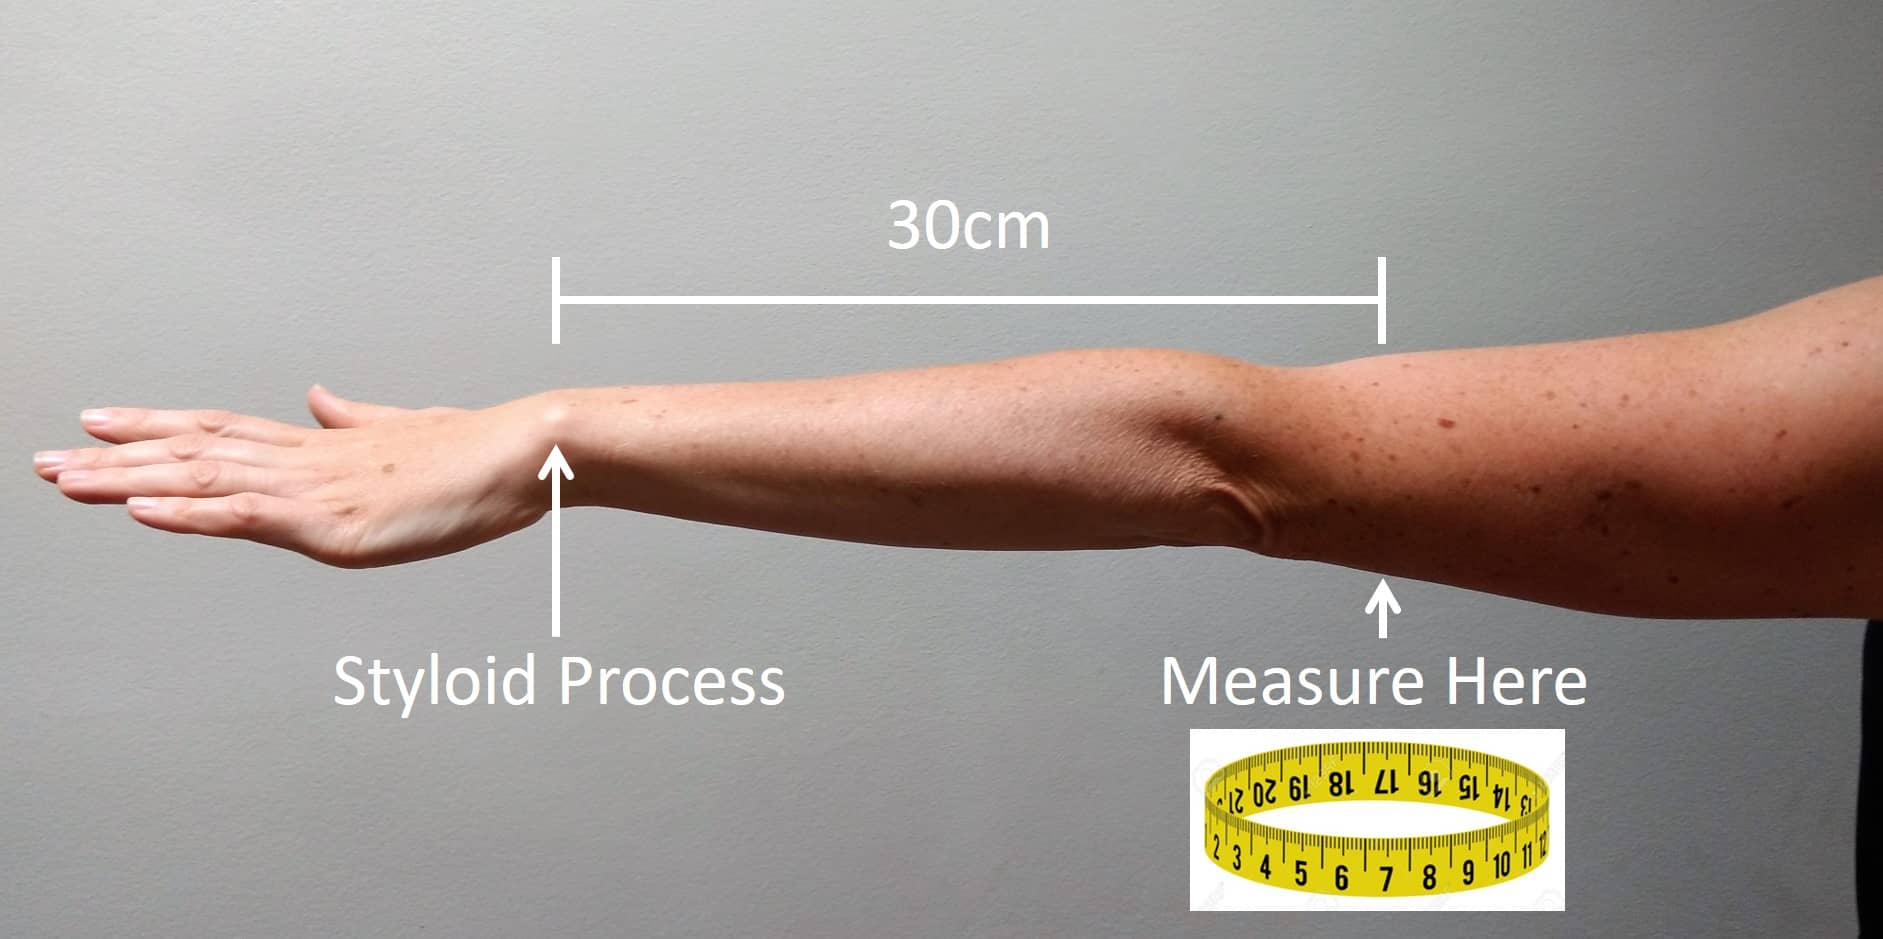 How to measure your arm to self-diagnose lymphedema using Test #4